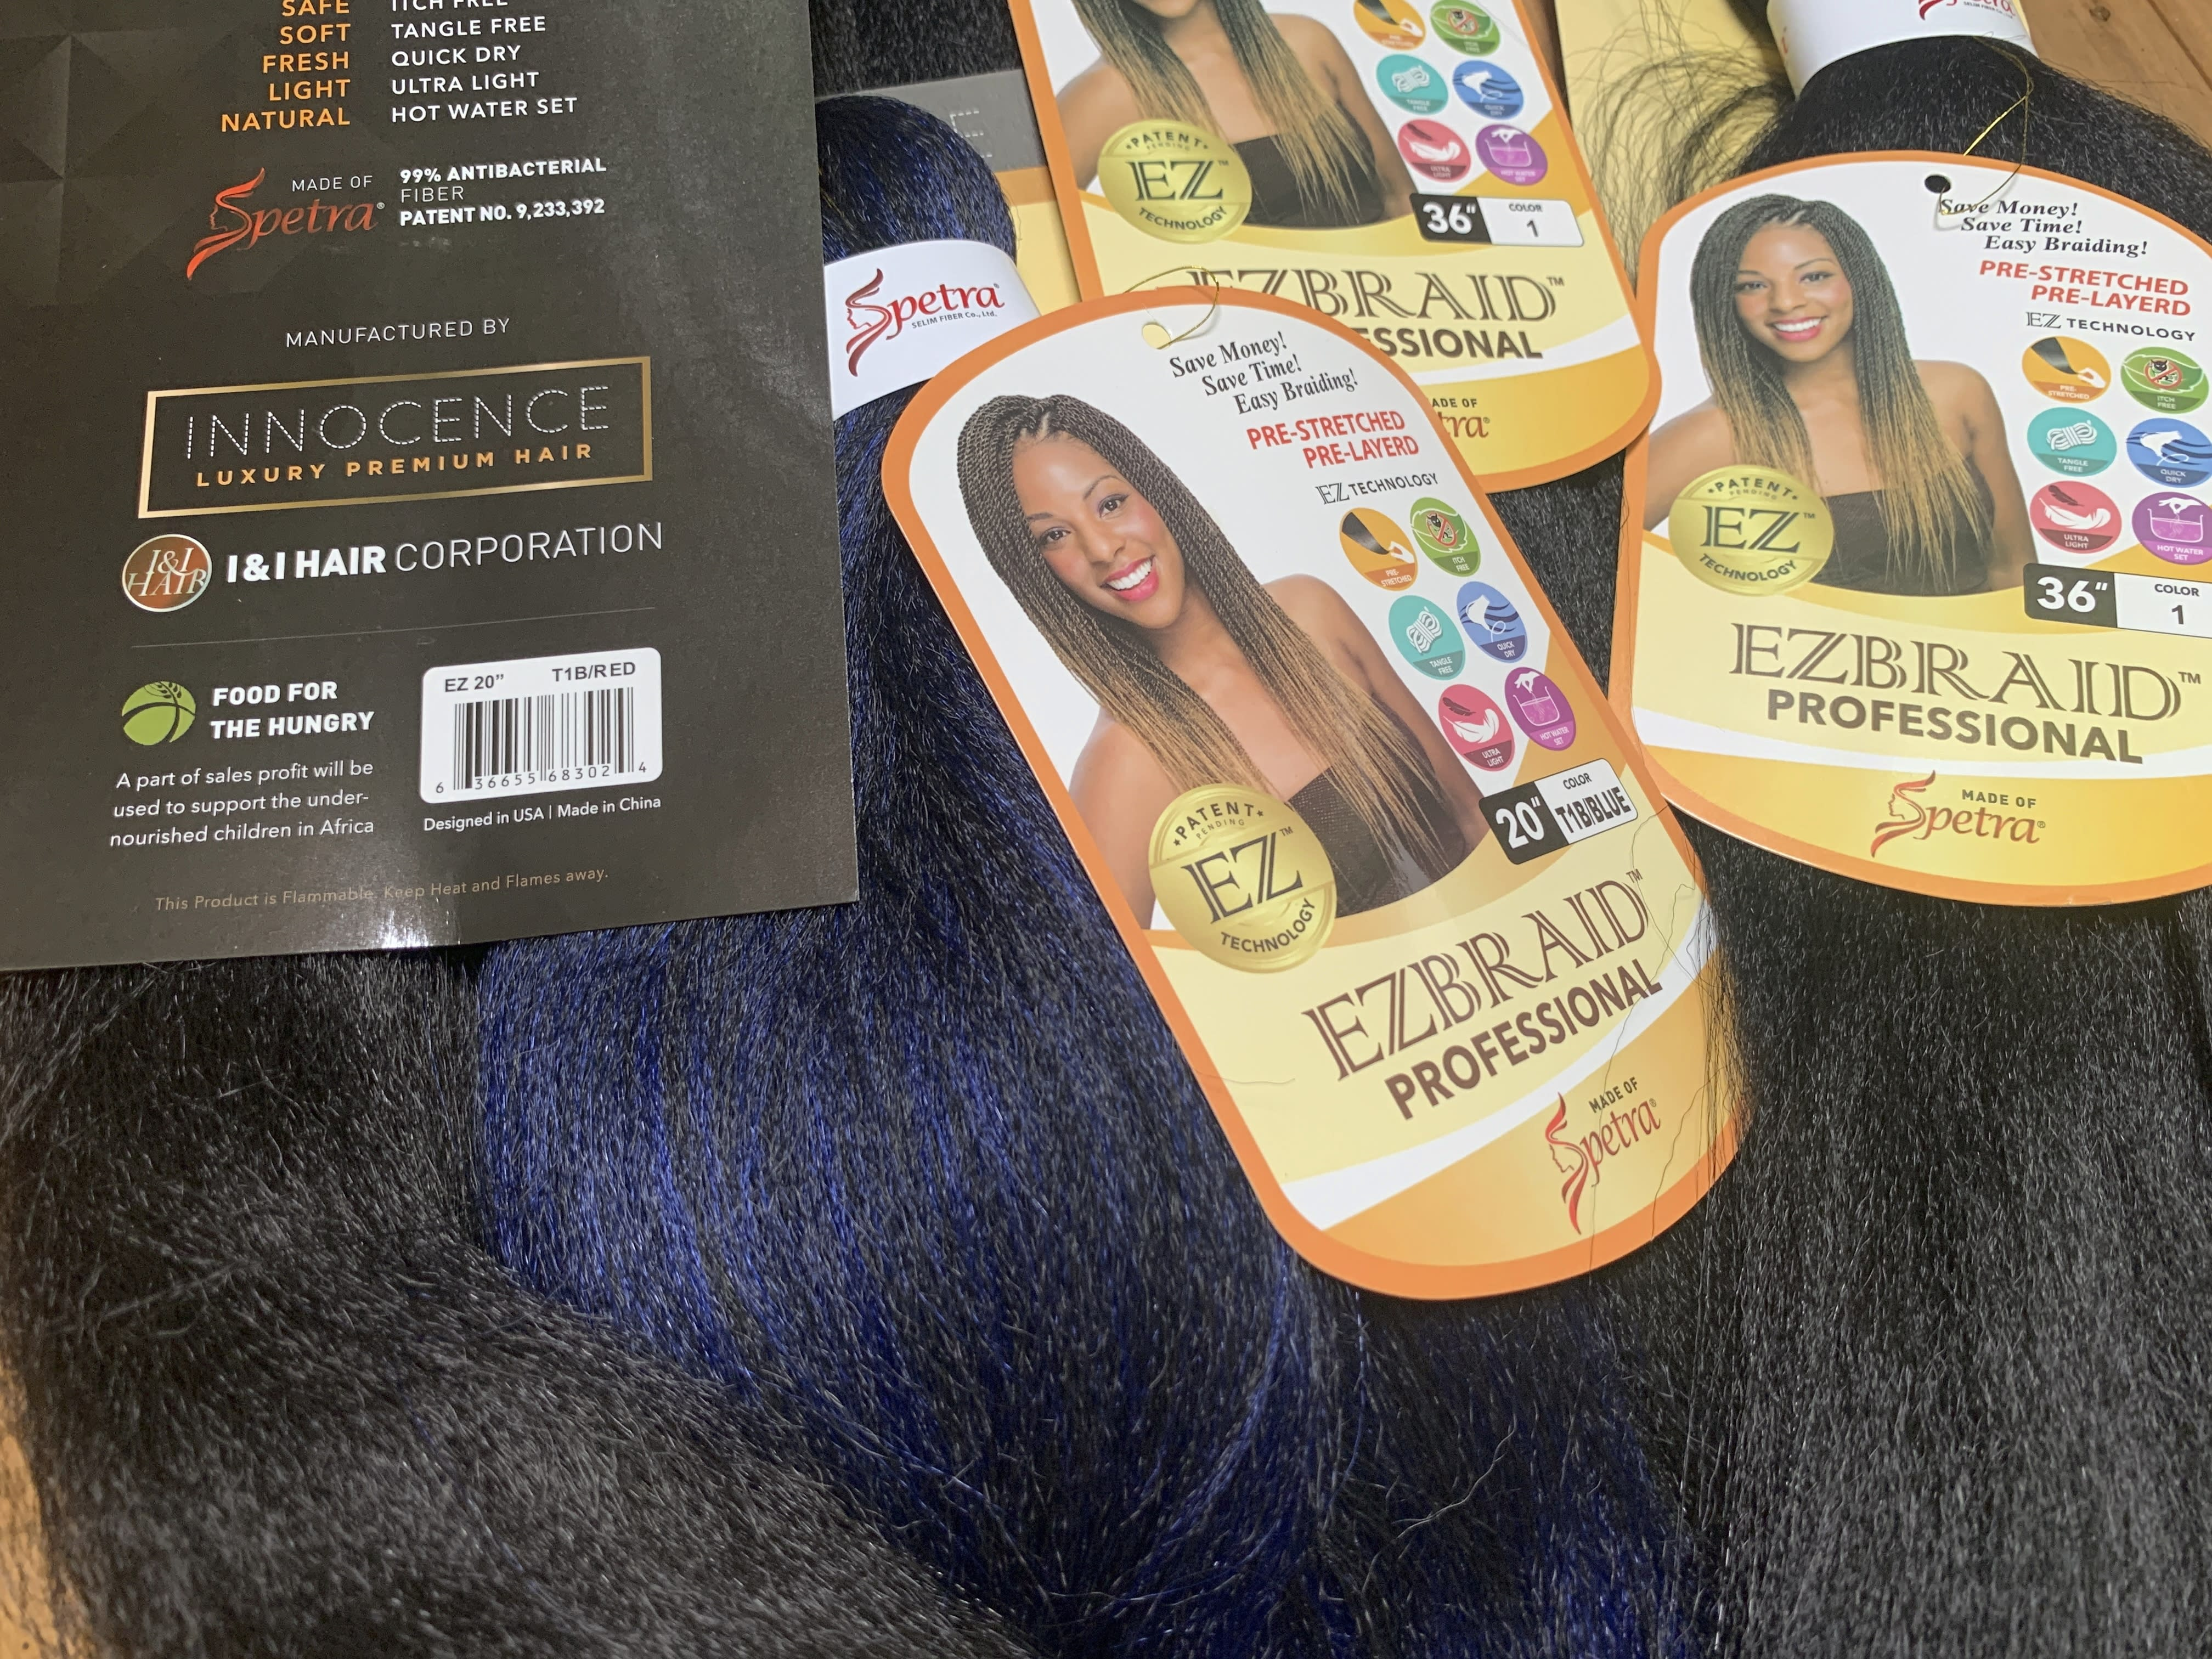 Samples of Pre-stretched Innocence EZBRAND Professional Antibacterial Braid hair extensions from I&I Hair Corporation, purchased in May, are seen in this photo in New York on Wednesday, July 1, 2020. Federal authorities in New York on Wednesday seized a shipment of weaves and other beauty accessories from I&I and other importers suspected to be made out of human hair taken from people locked inside a Chinese internment camp. (AP Photo/Wong Maye-E)